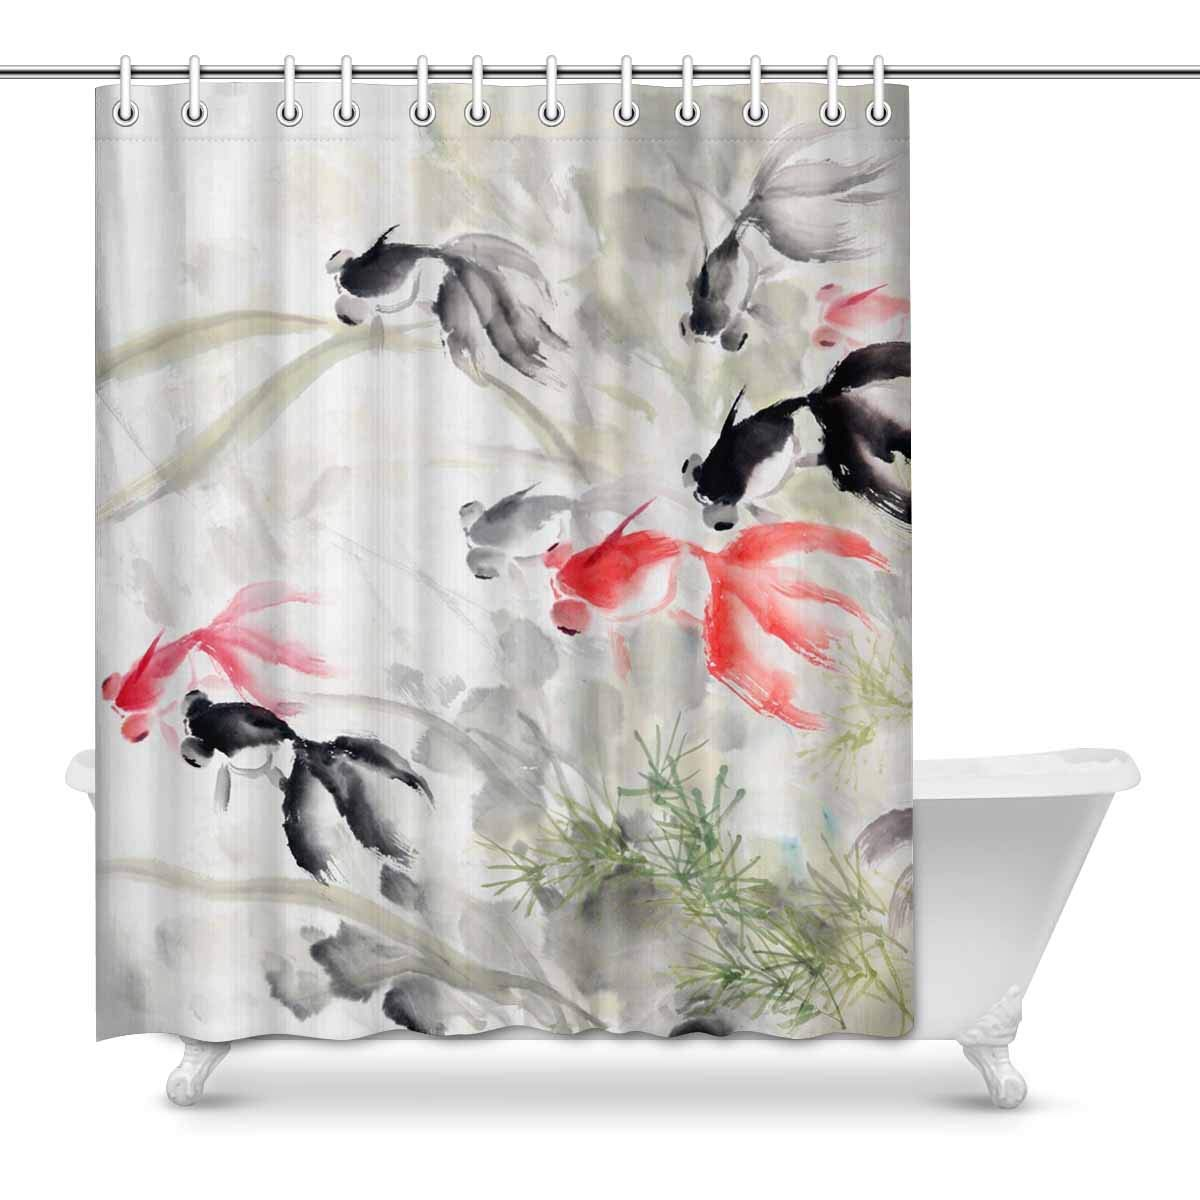 Shower Curtains Colorful Koi Fishes Fabric Curtains 71